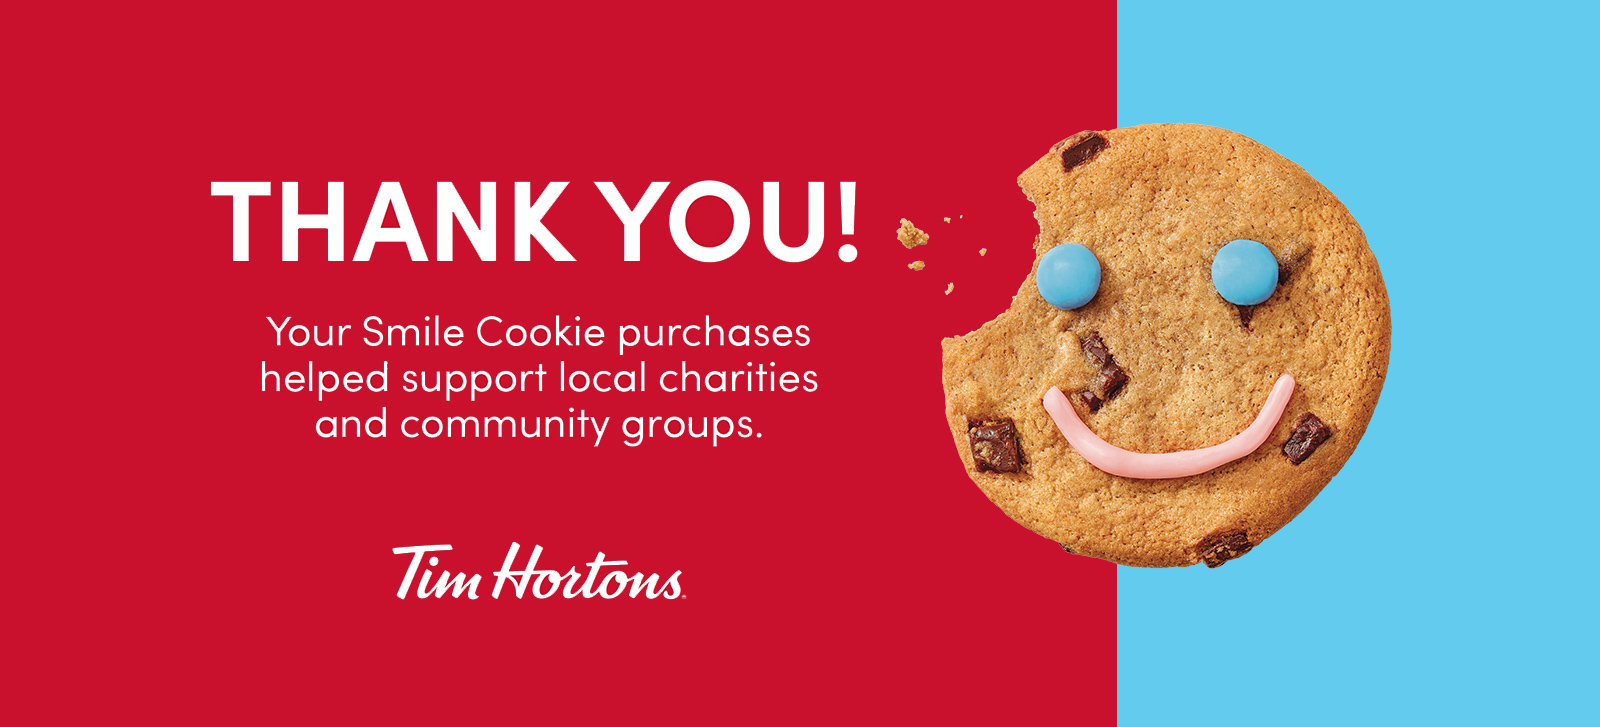 THANK YOU! Your Smile Cookie purchases helped support local charities and communityy groups. Tim Hortons.